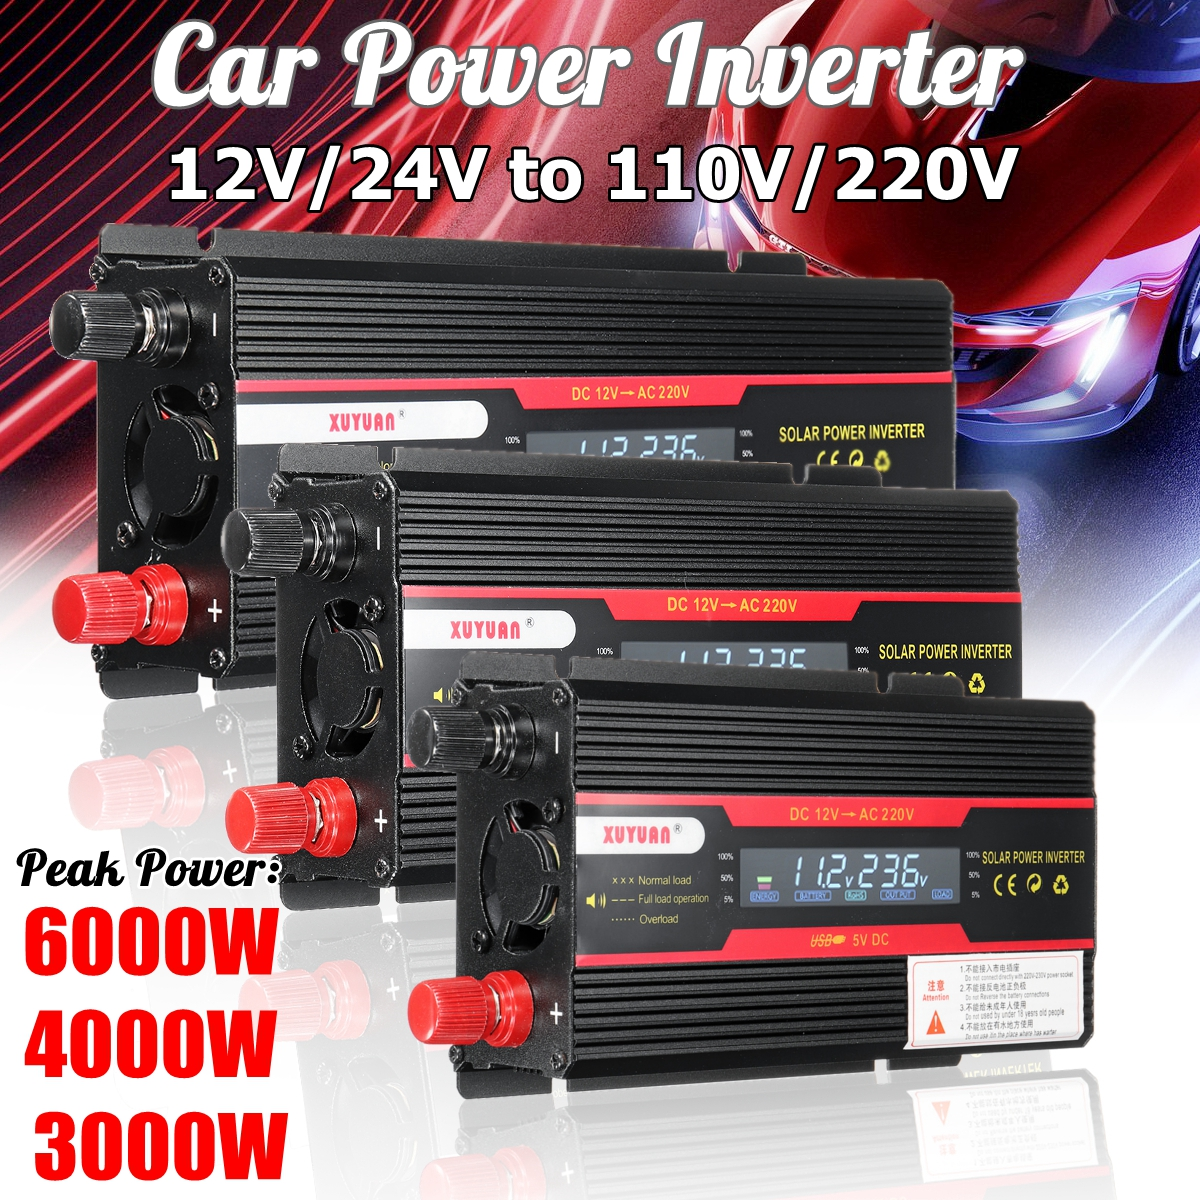 Auto Inverter 12V 220V 3000W 4000W 6000W P eak Power Inverter Spannung Konverter Transformator 12V 220V Inverter + LCD Display